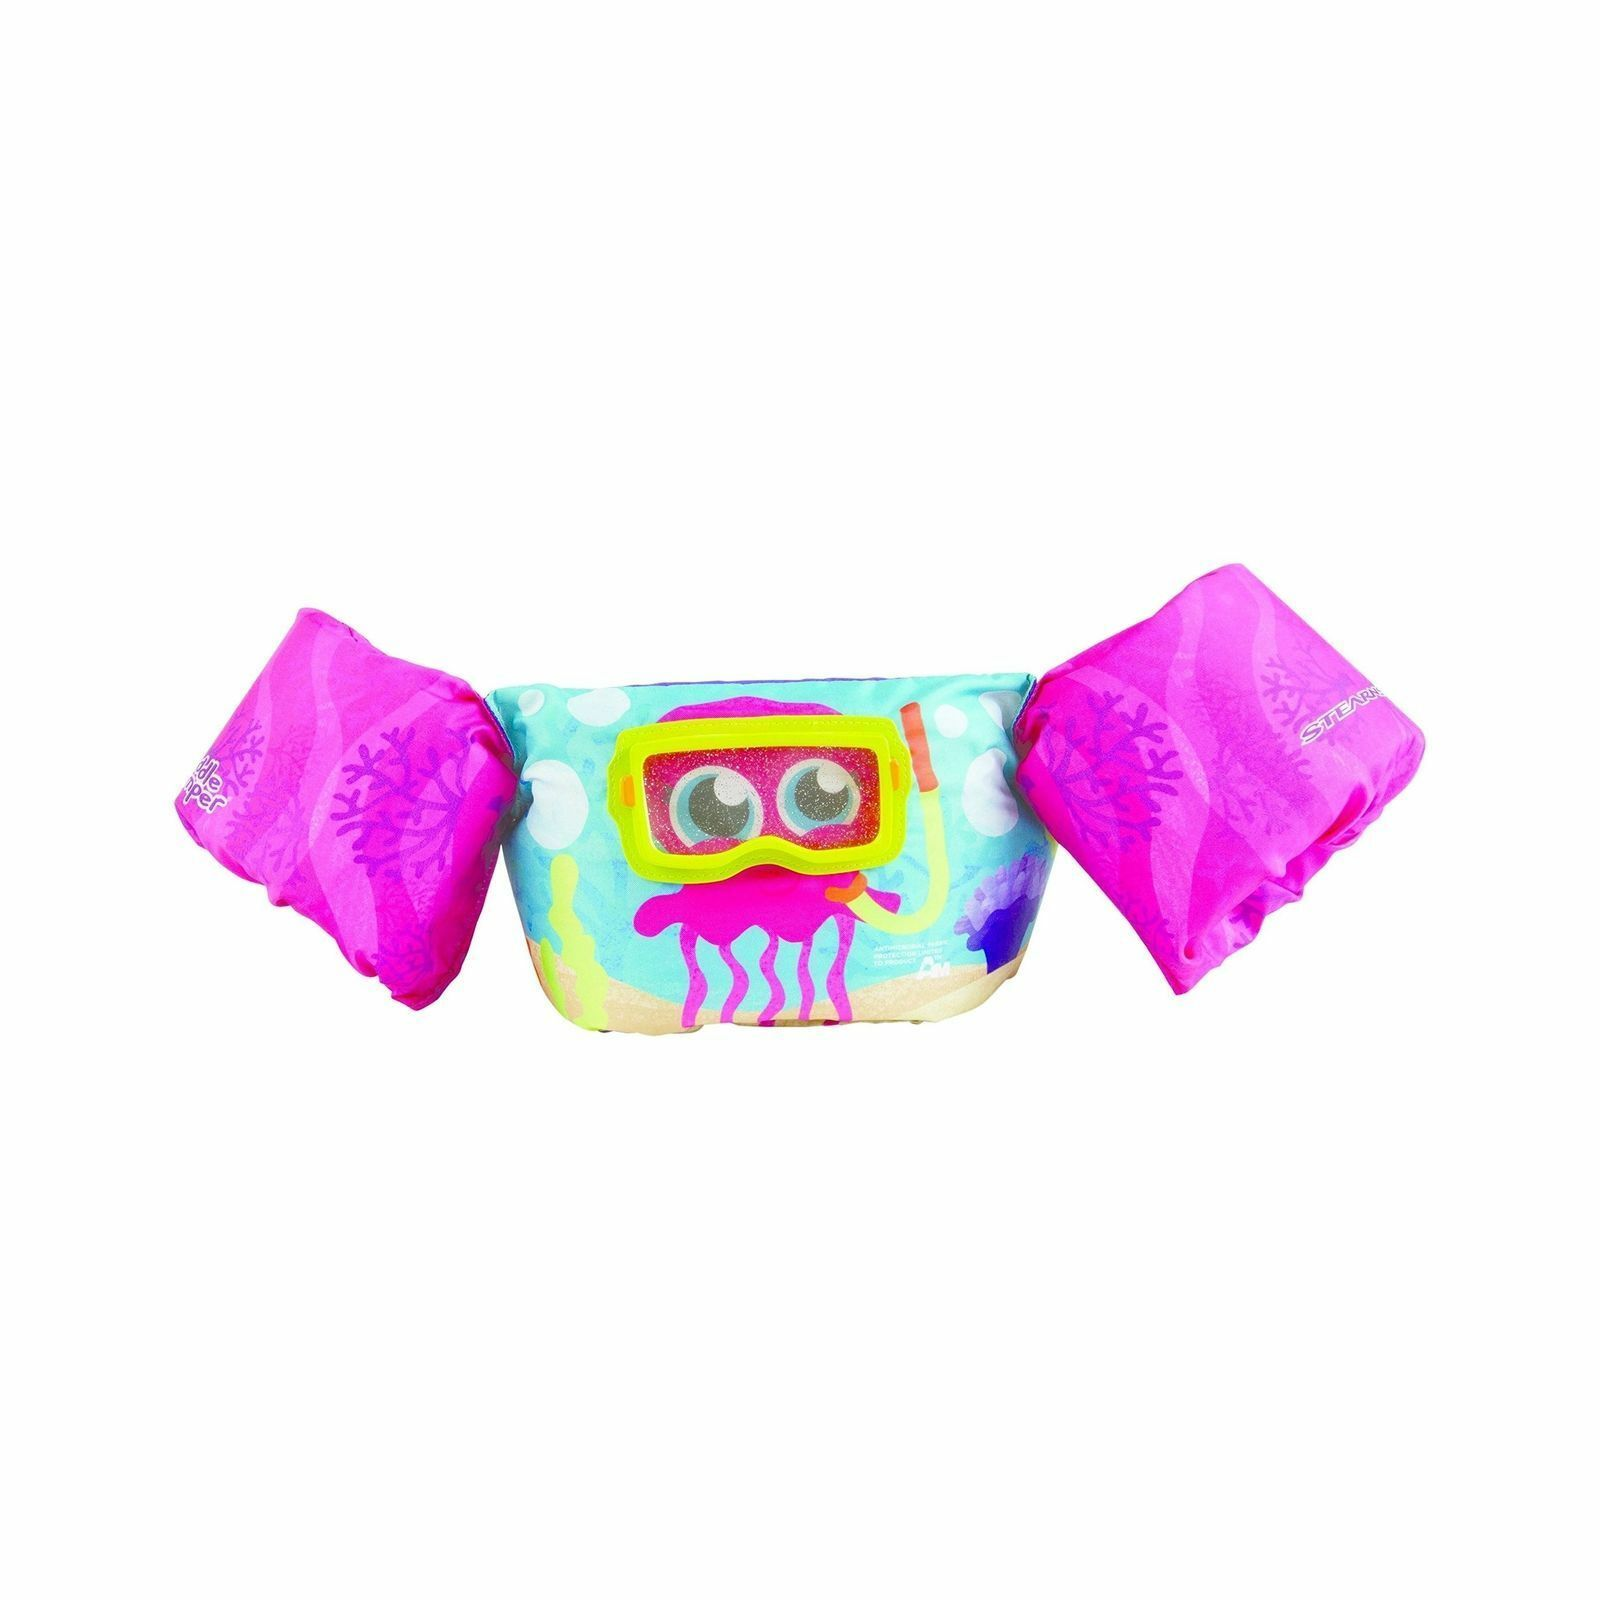 Stearns Puddle Jumper Life Jacket 3D Learn to Swim Size Kids 30-50 lb. BRAND NEW